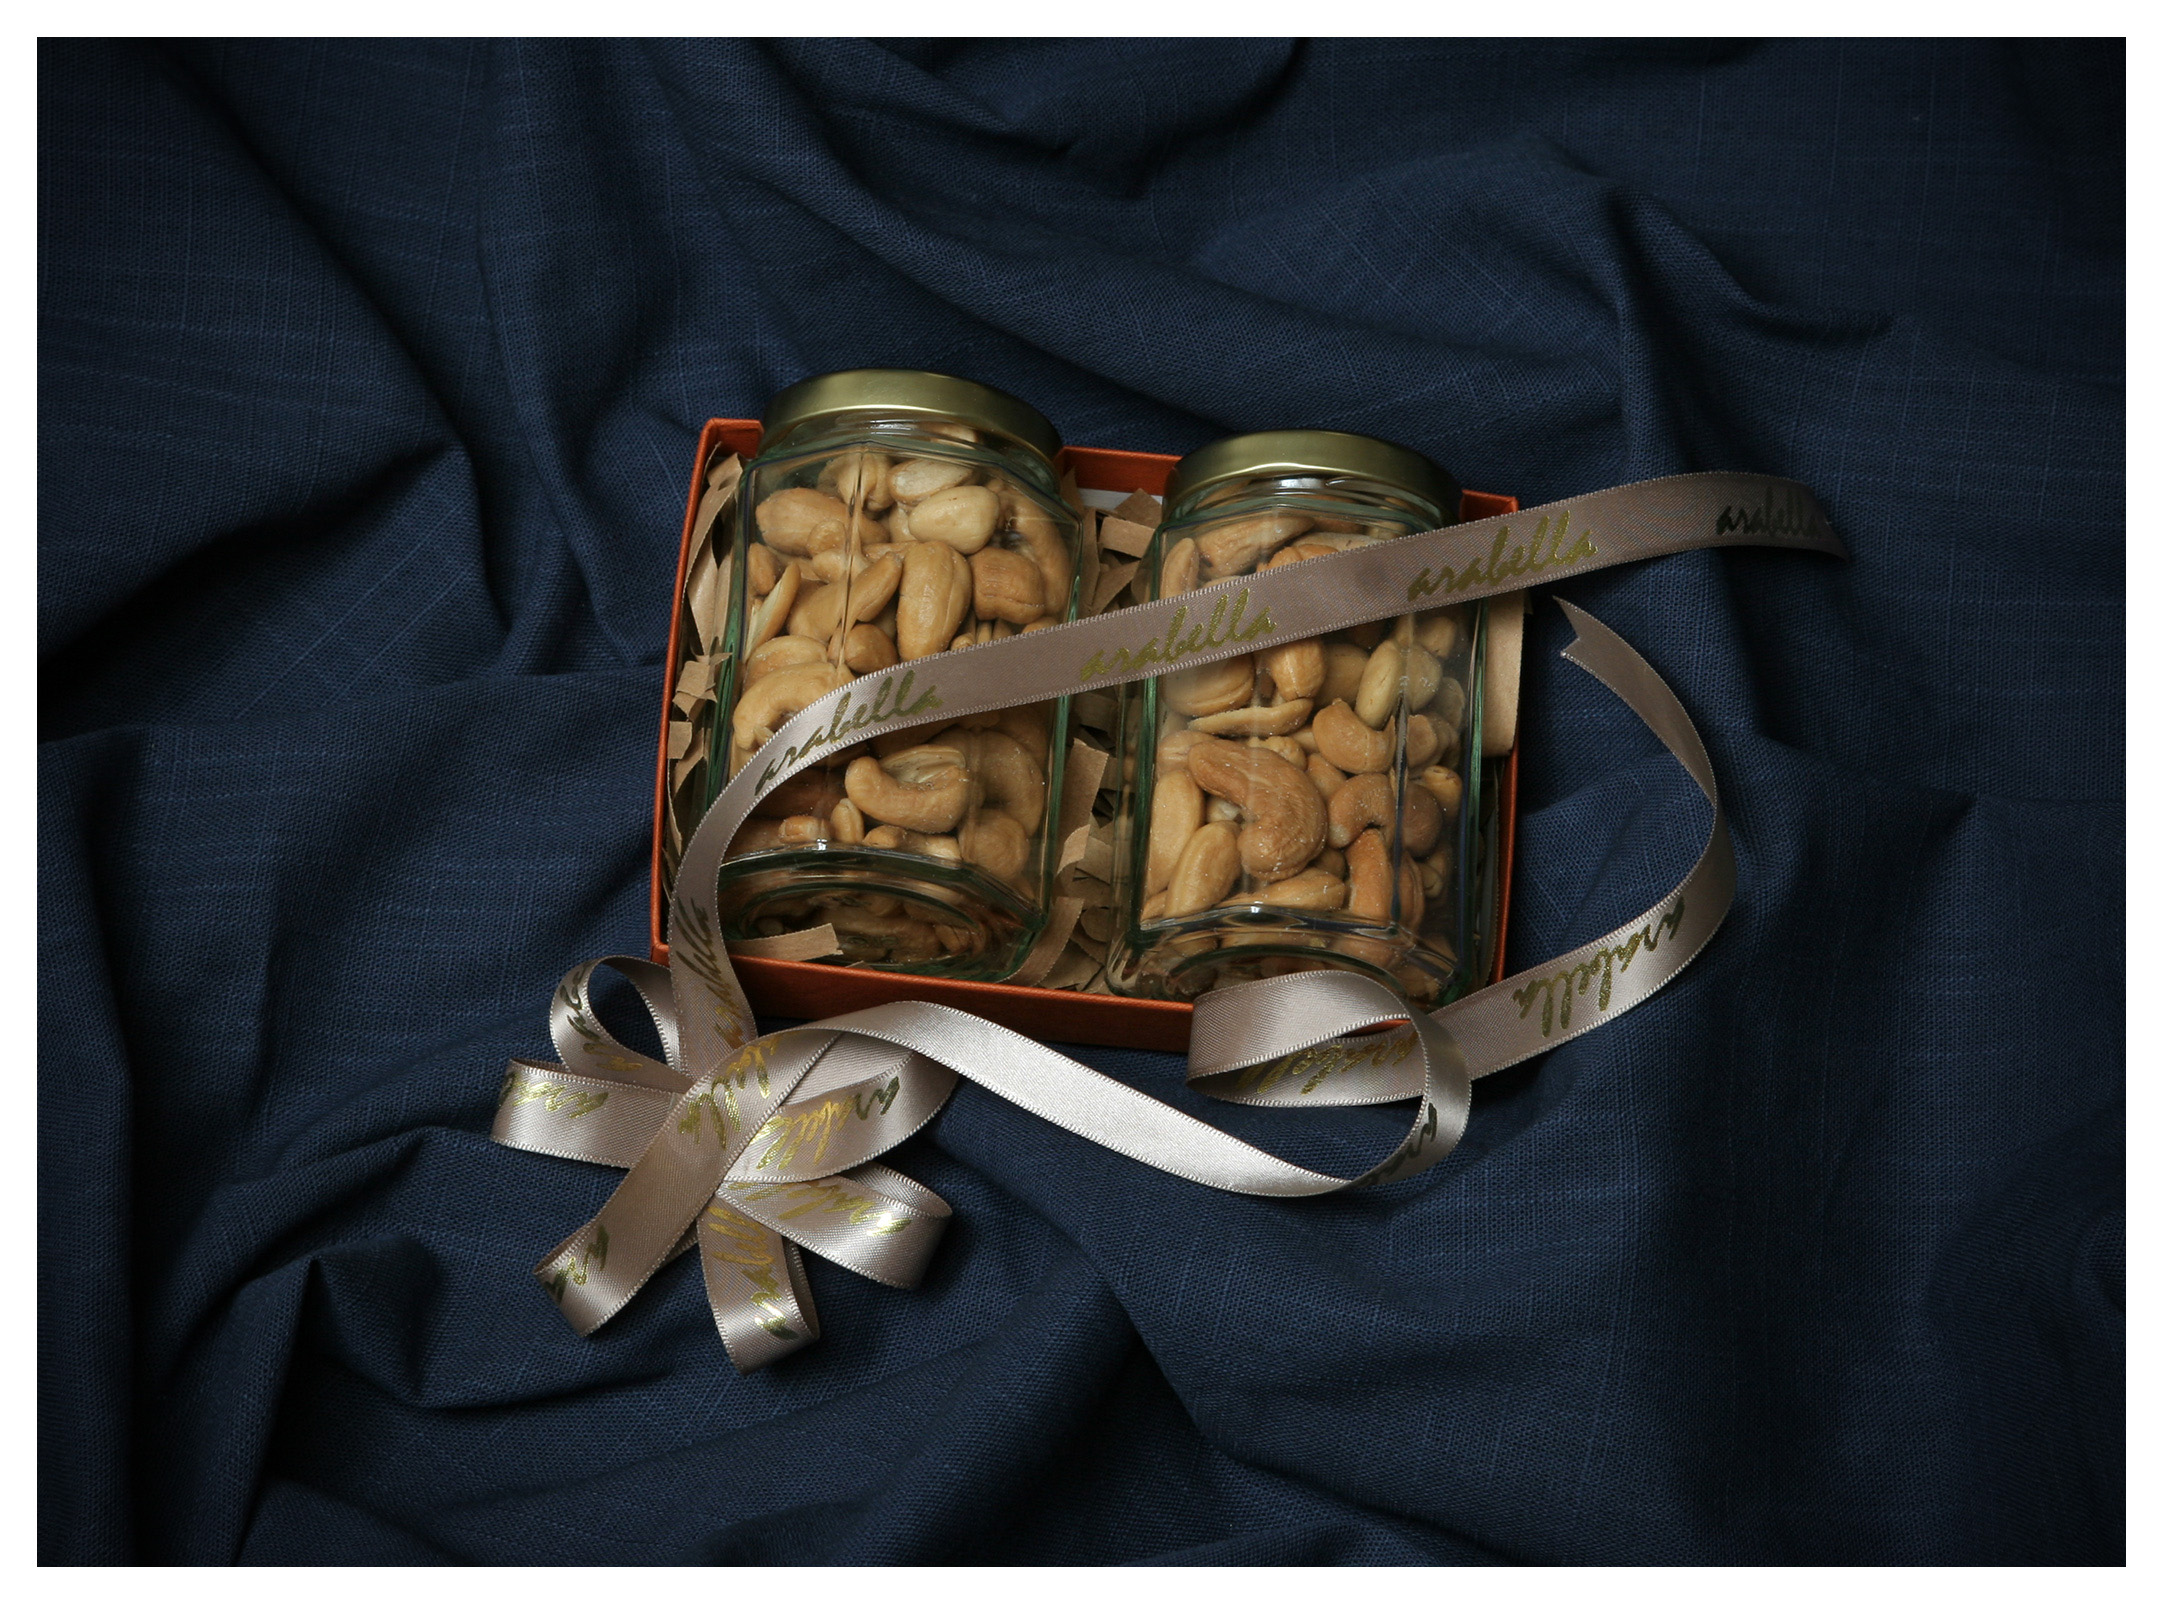 Food as product photography: Roasted jumbo cashew nuts in luxury gift box